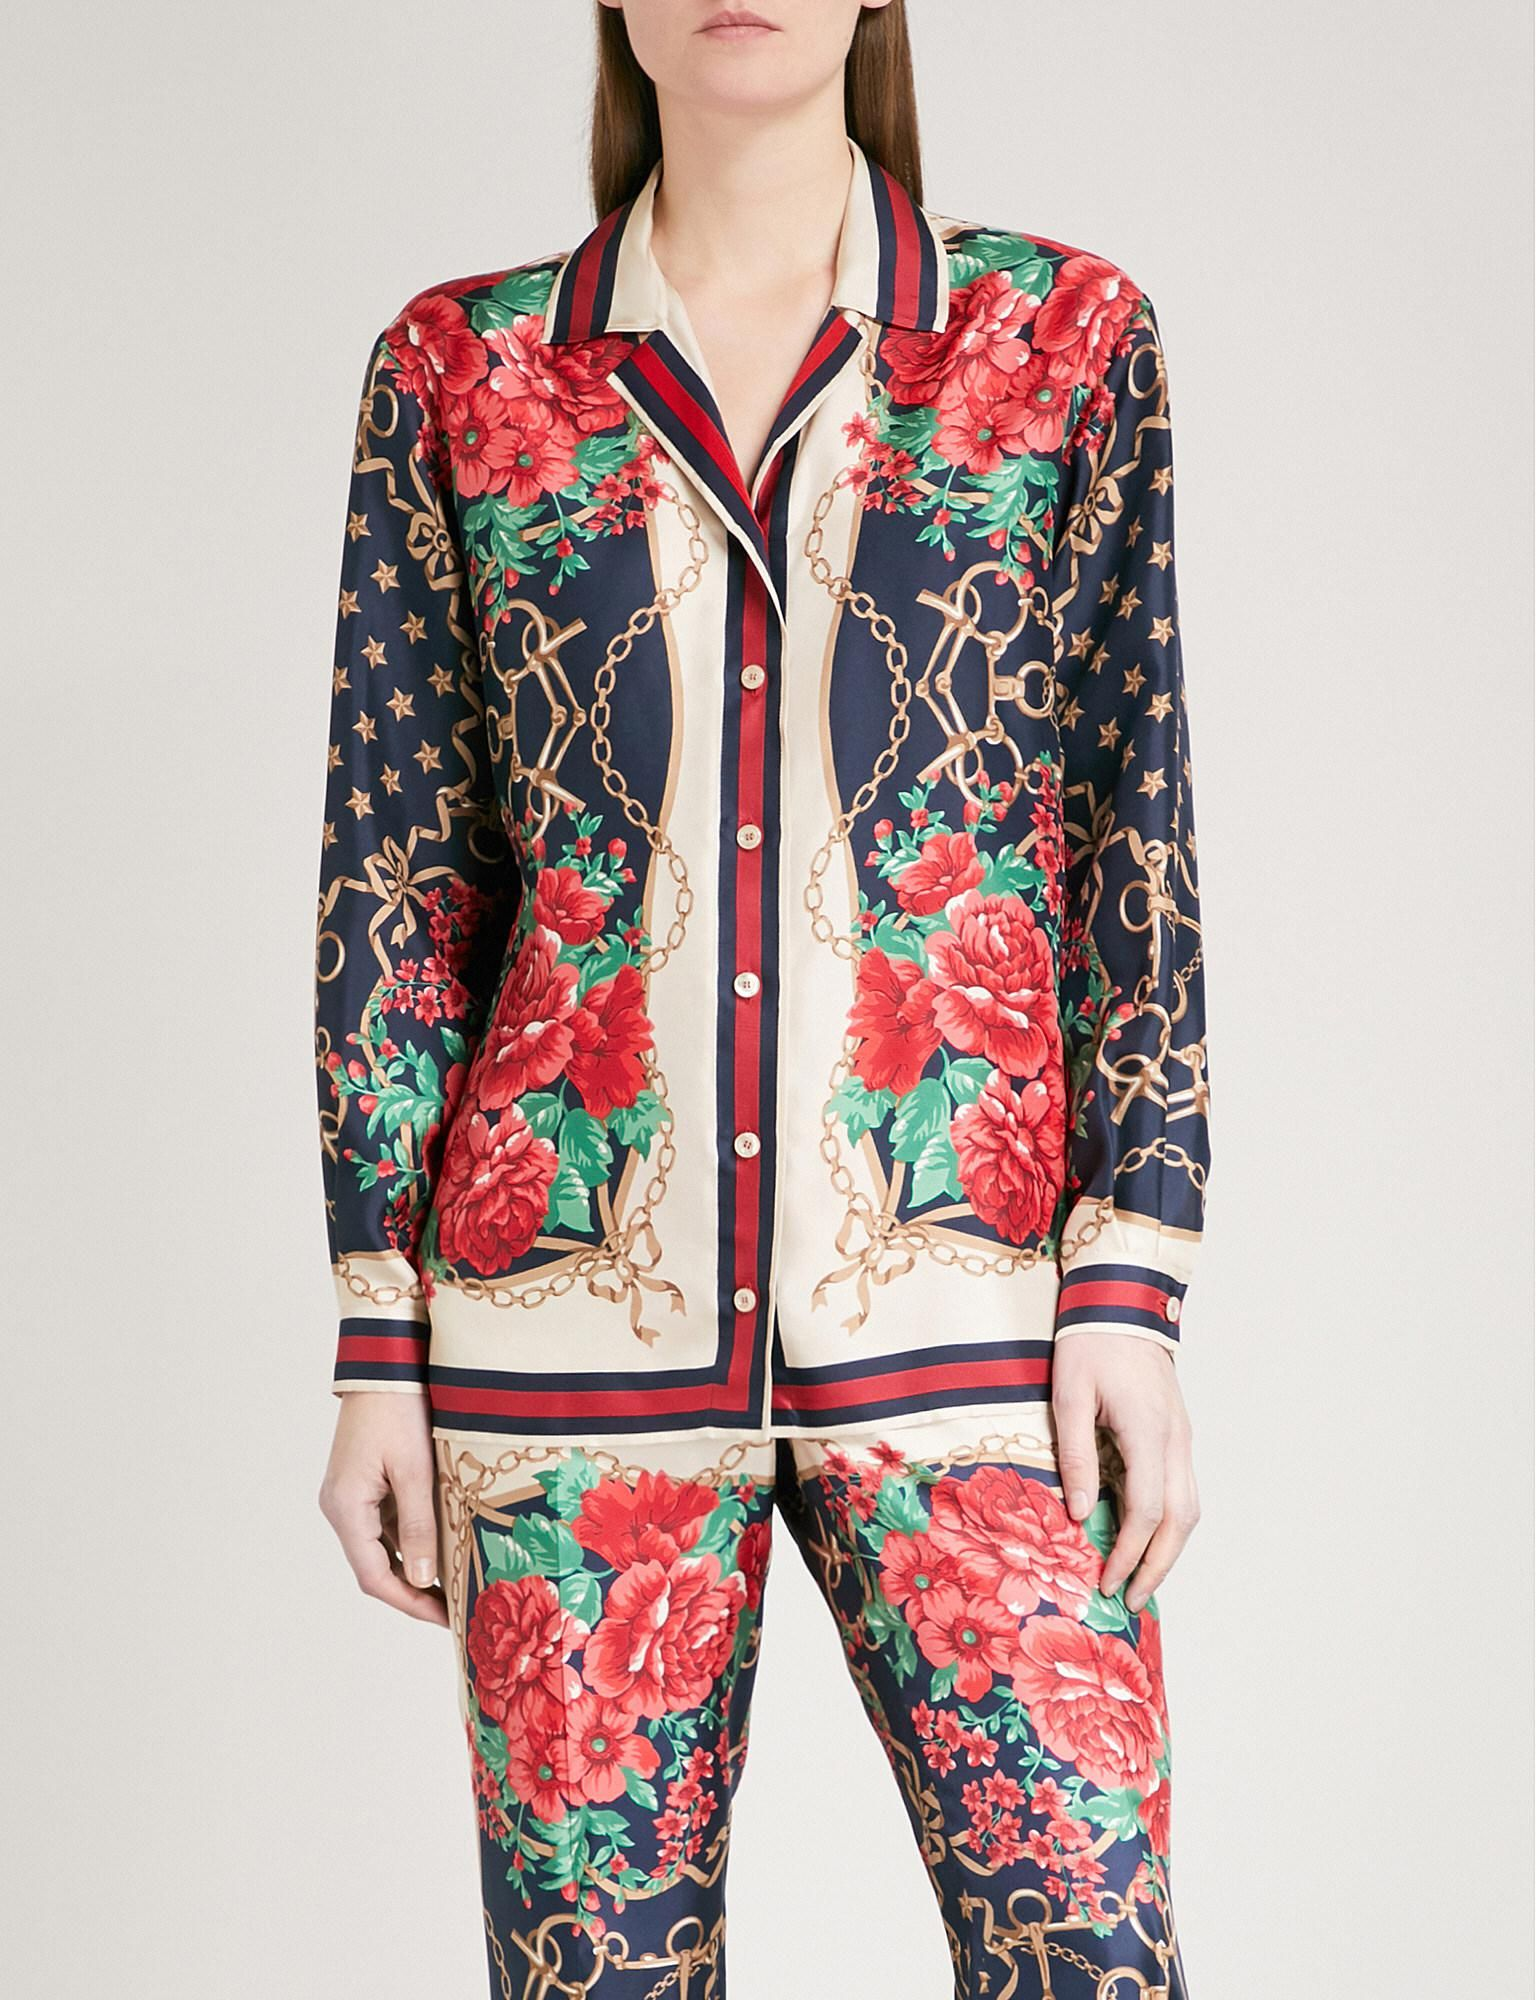 8b5db69d7 Women's Floral Chain Print Shirt in 2019 | gucci | Printed shirts ...